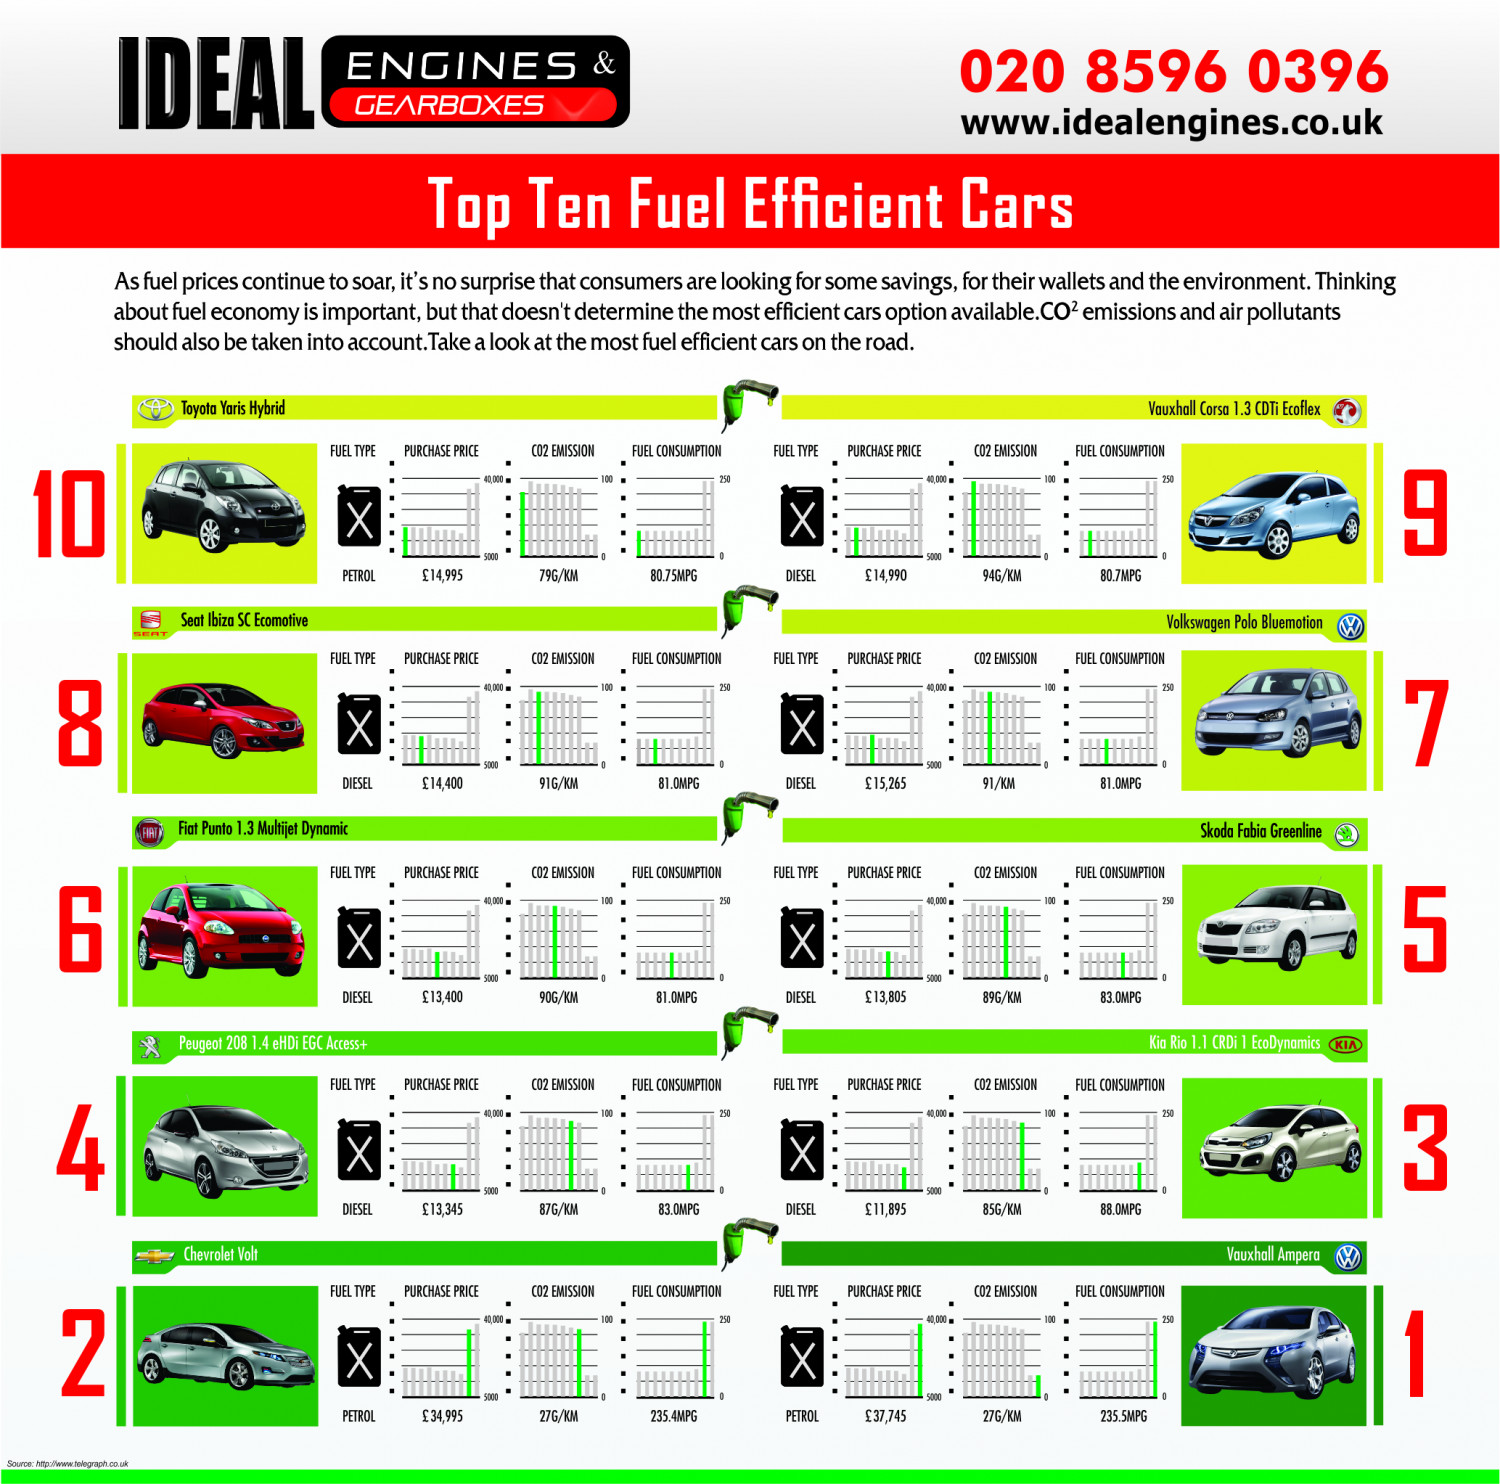 Top Ten Fuel Efficient Car Engines Infographic